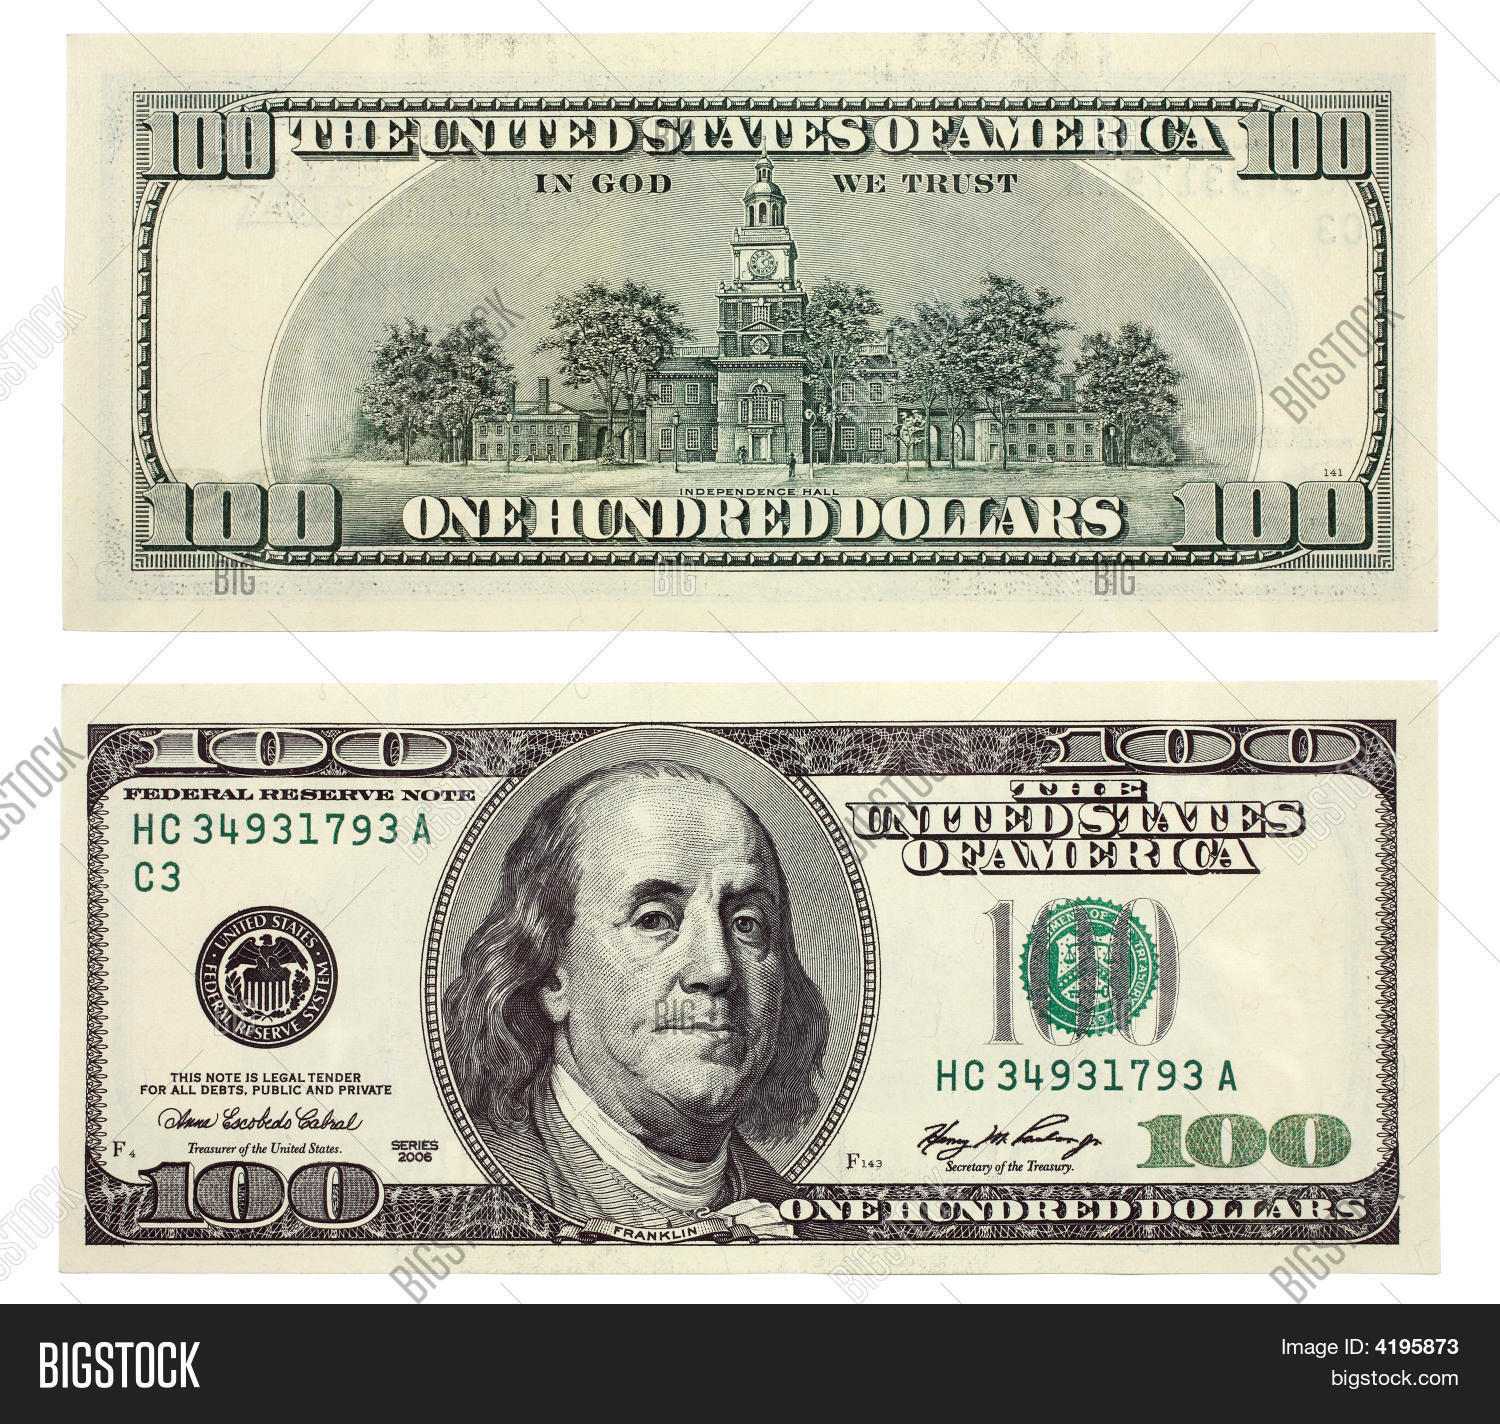 100 dollar bill drop card template - hundred dollar bill image photo free trial bigstock